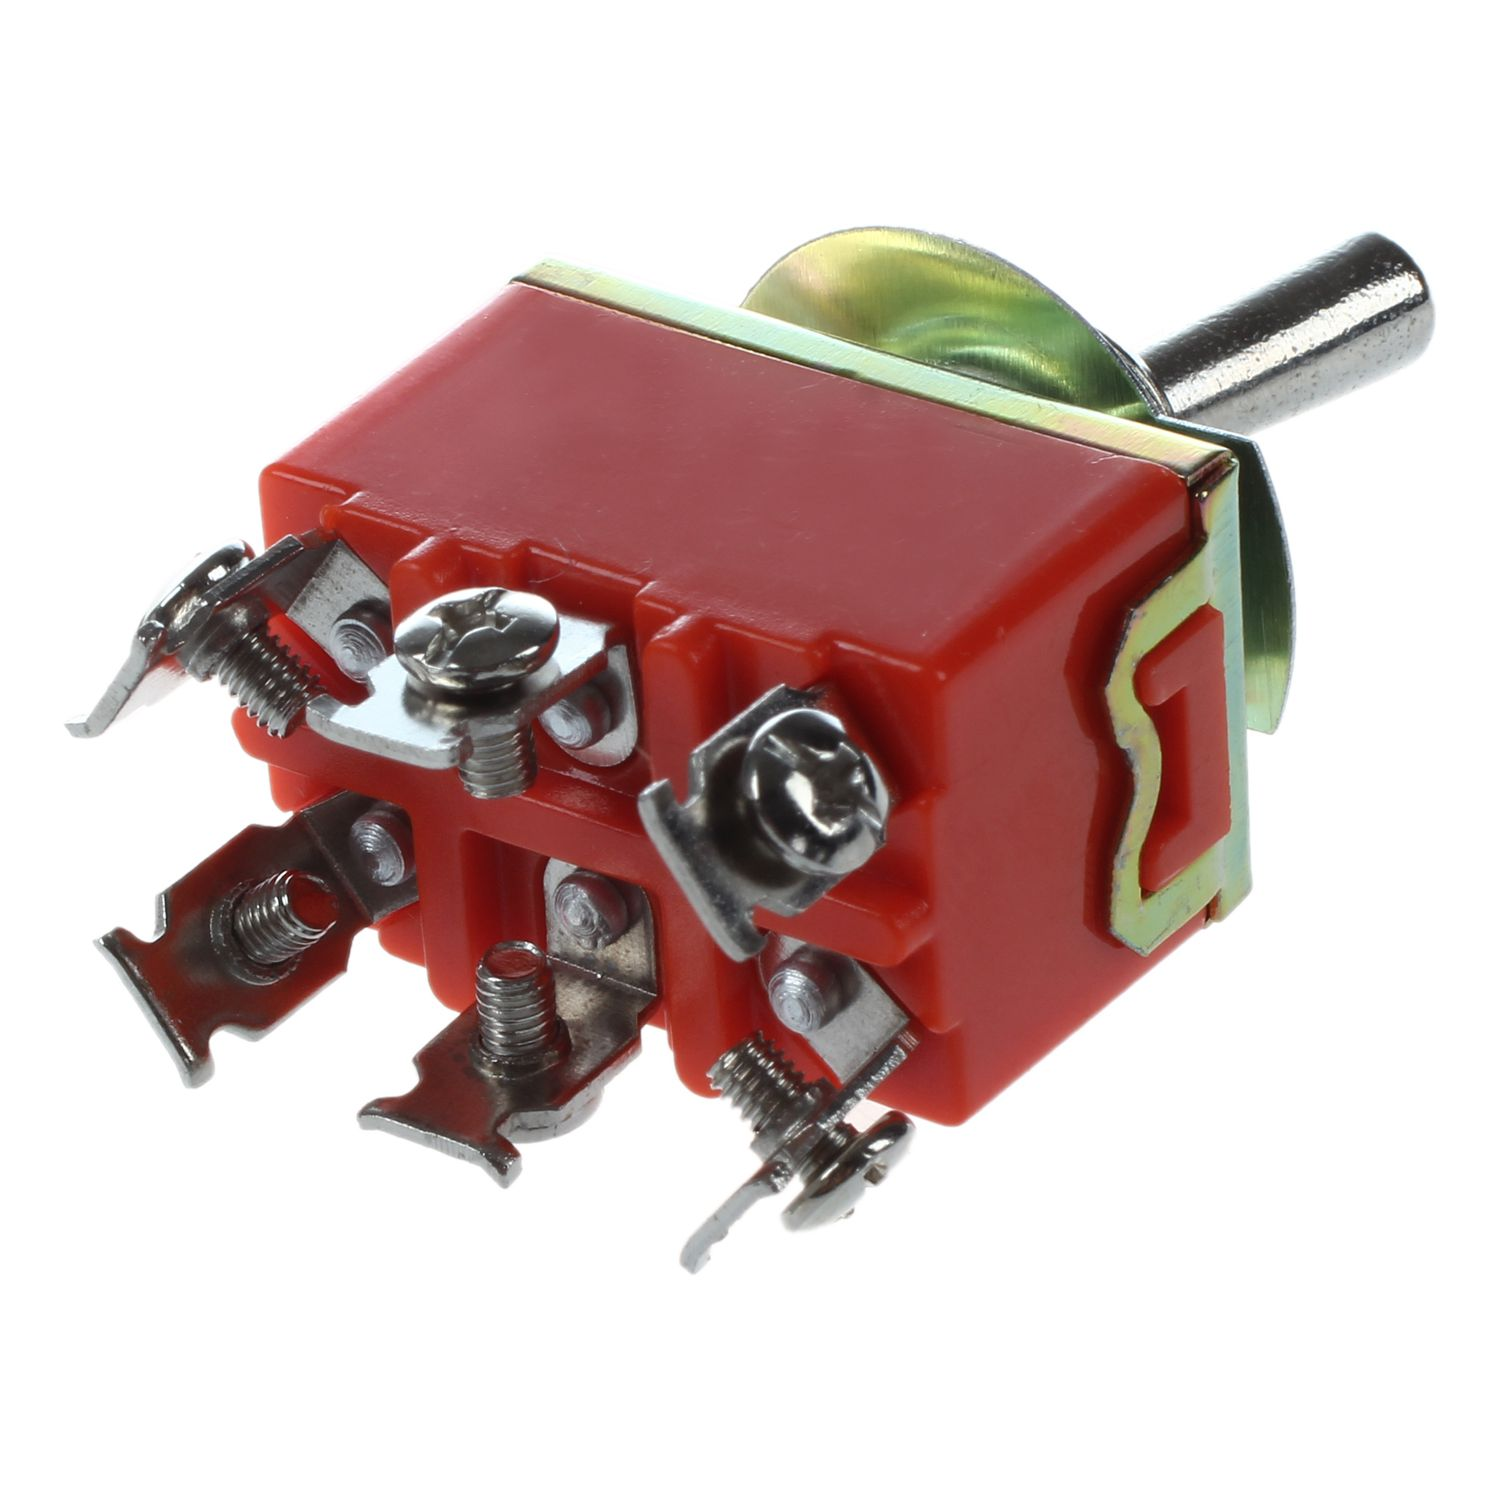 Ac 250v 15a Latching 3 Way On Off Single Pole Double Throw Toggle Red Dpdt Rocker Switch With Light 1 X Note Shooting And Different Displays May Cause The Color Of Item In Picture A Little From Real Thing